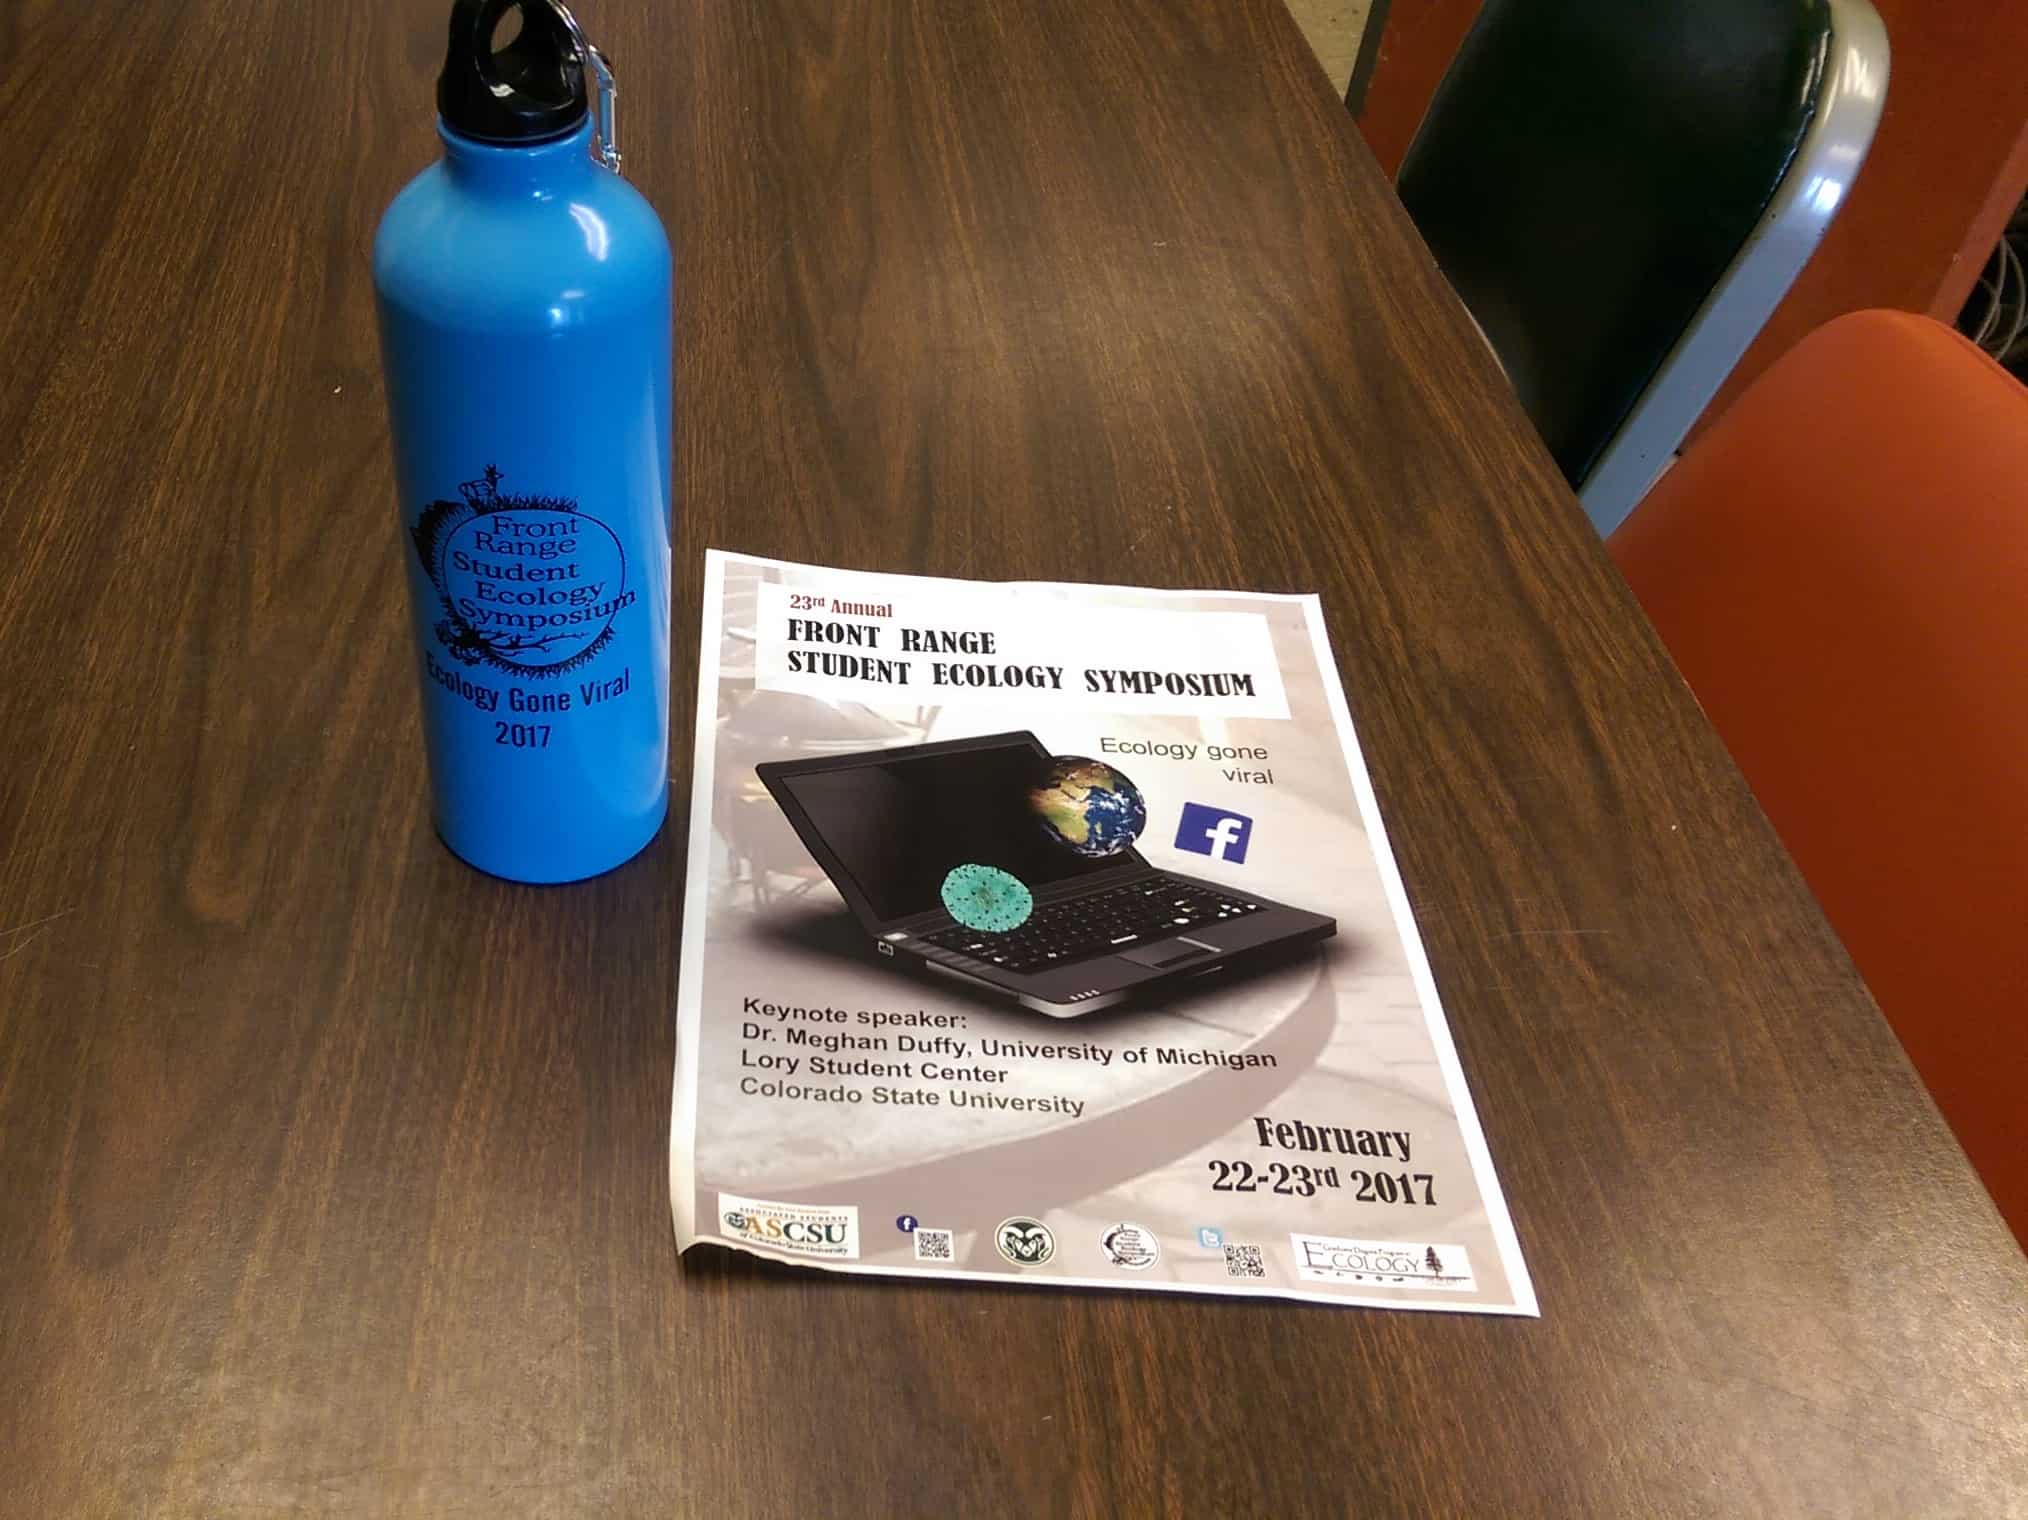 Blue metal water bottle with pamphlet